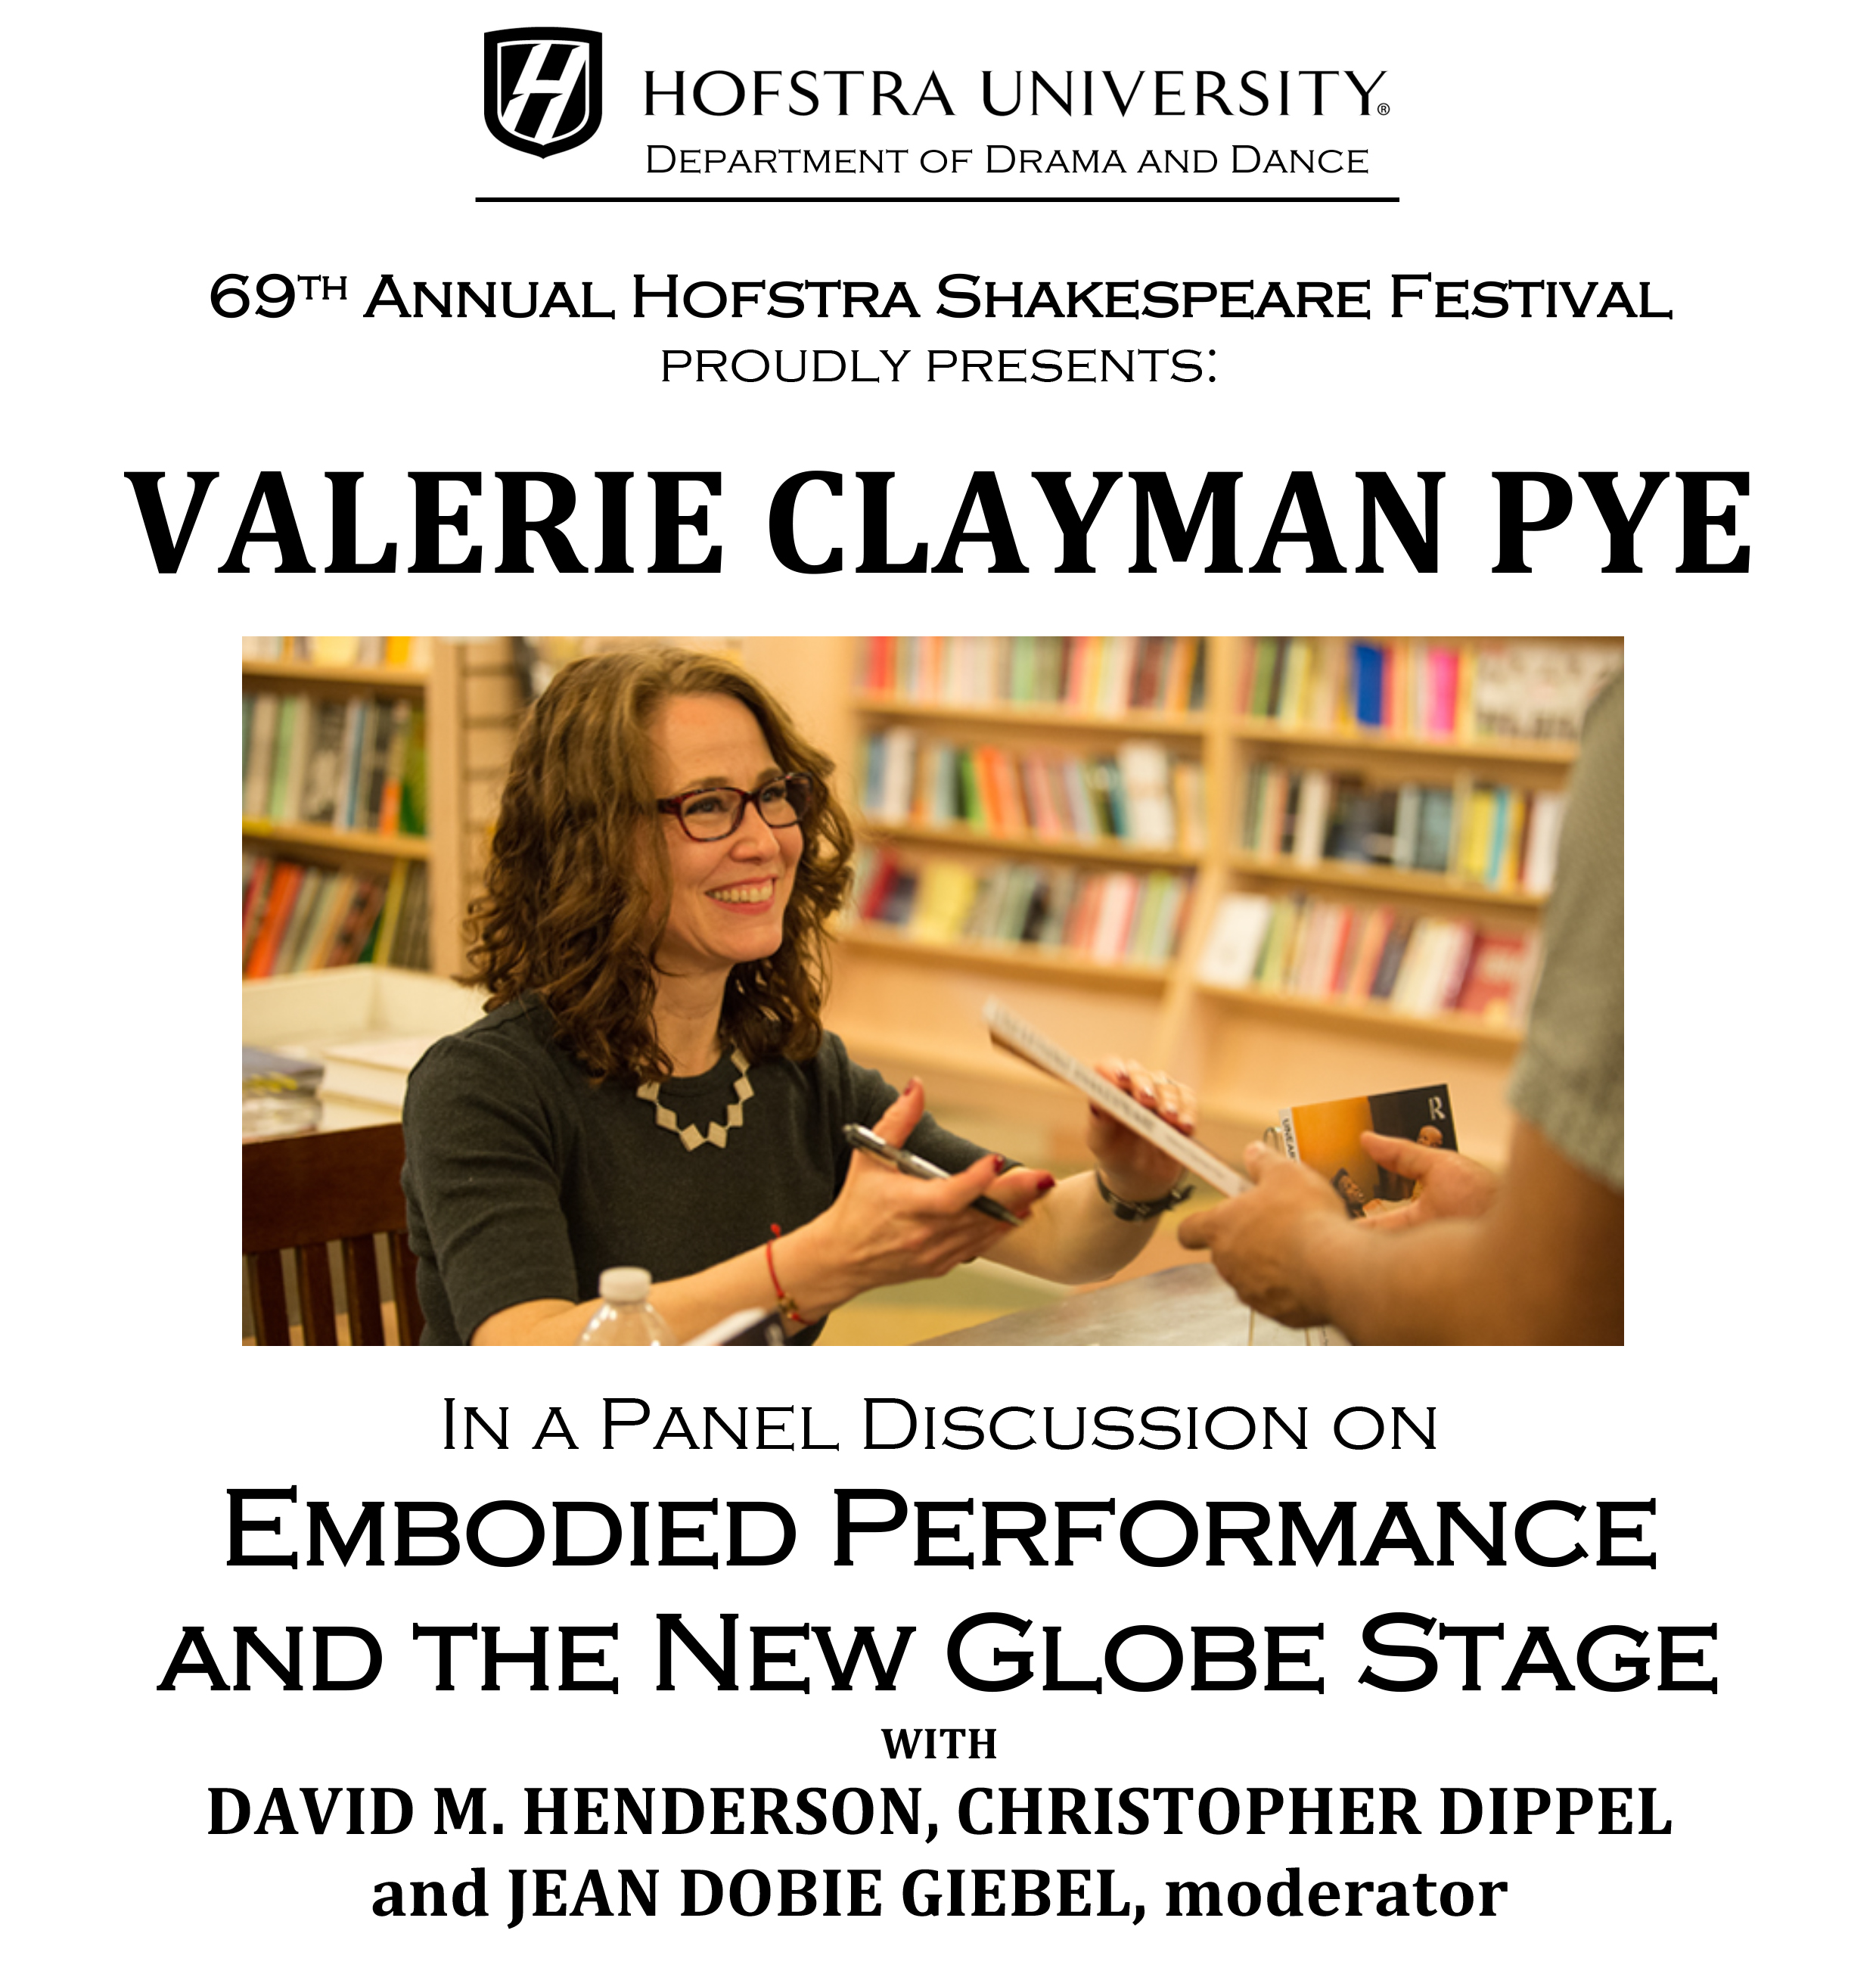 Hofstra University, Department of Drama and Dance, The 69th Annual Hofstra Shakespeare Festival proudly presents: Valerie Clayman Pye. In a panel discussion on embodied performance and the new globe stage with David M Henderson, Christopher Dippel and Jean Dobie Giebel, moderator